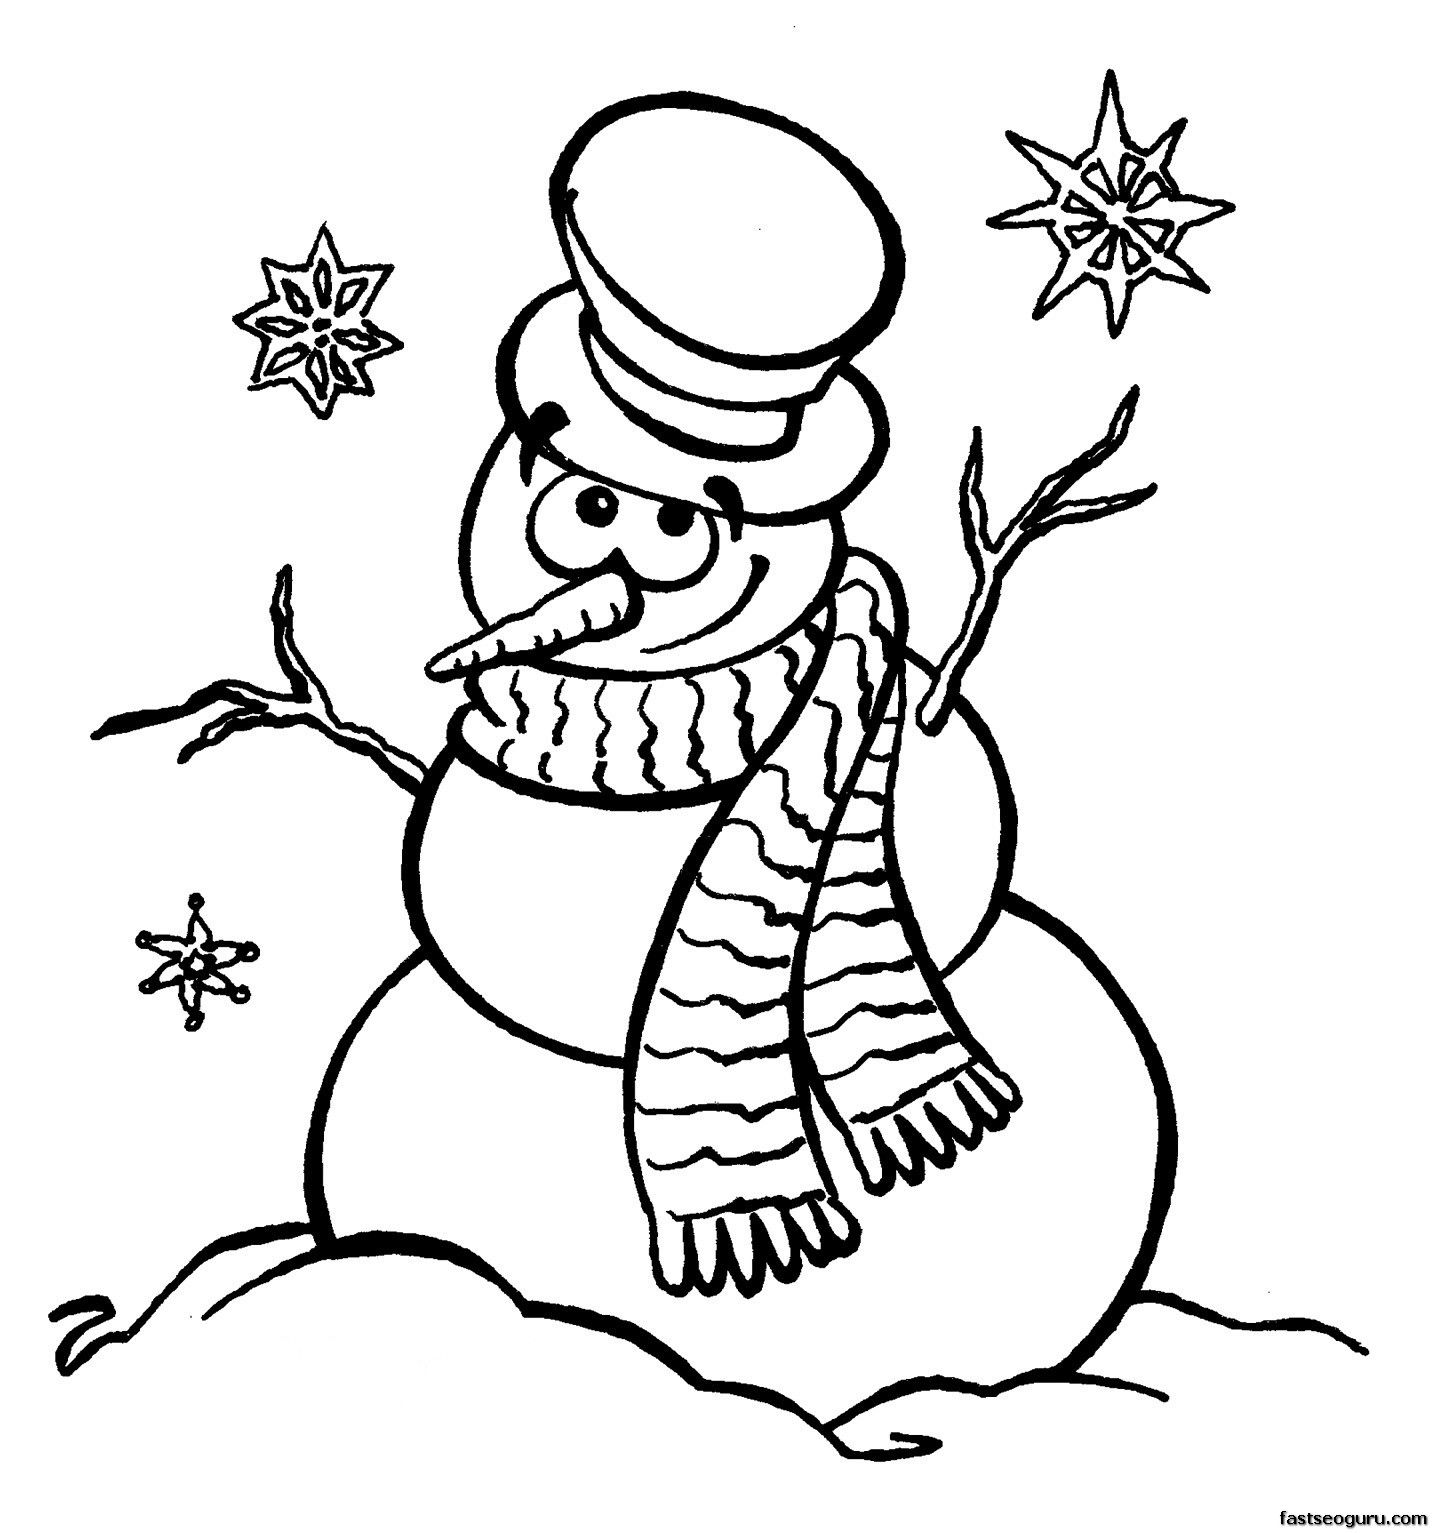 Printable coloring sheet snowman near Christmas.jpg (1436